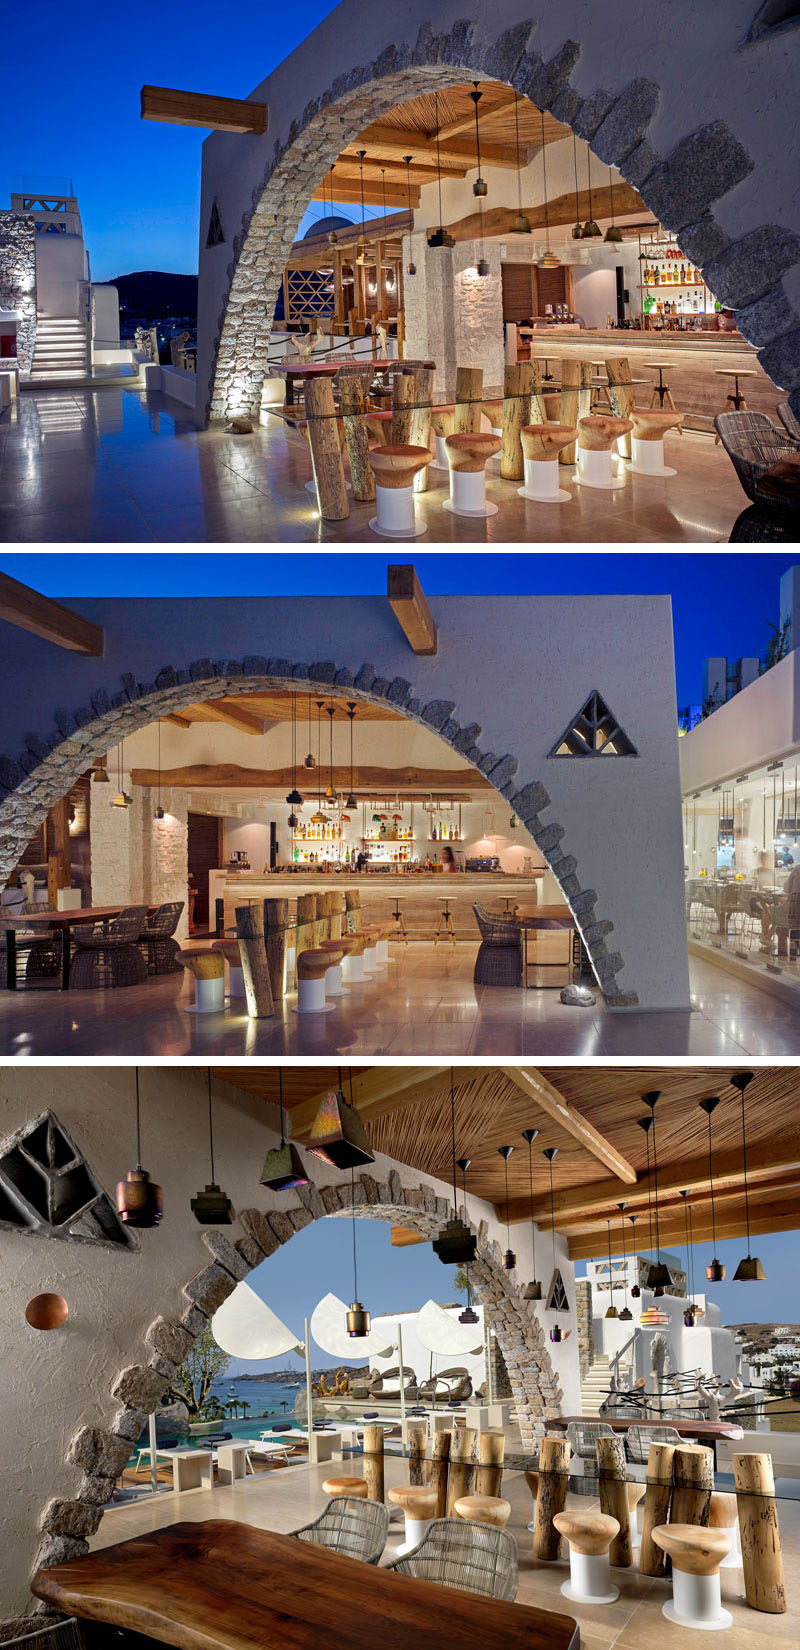 This hotel bar is located next to the pool and has carved wooden stools surrounding a sculptural glass table supported by wooden logs.